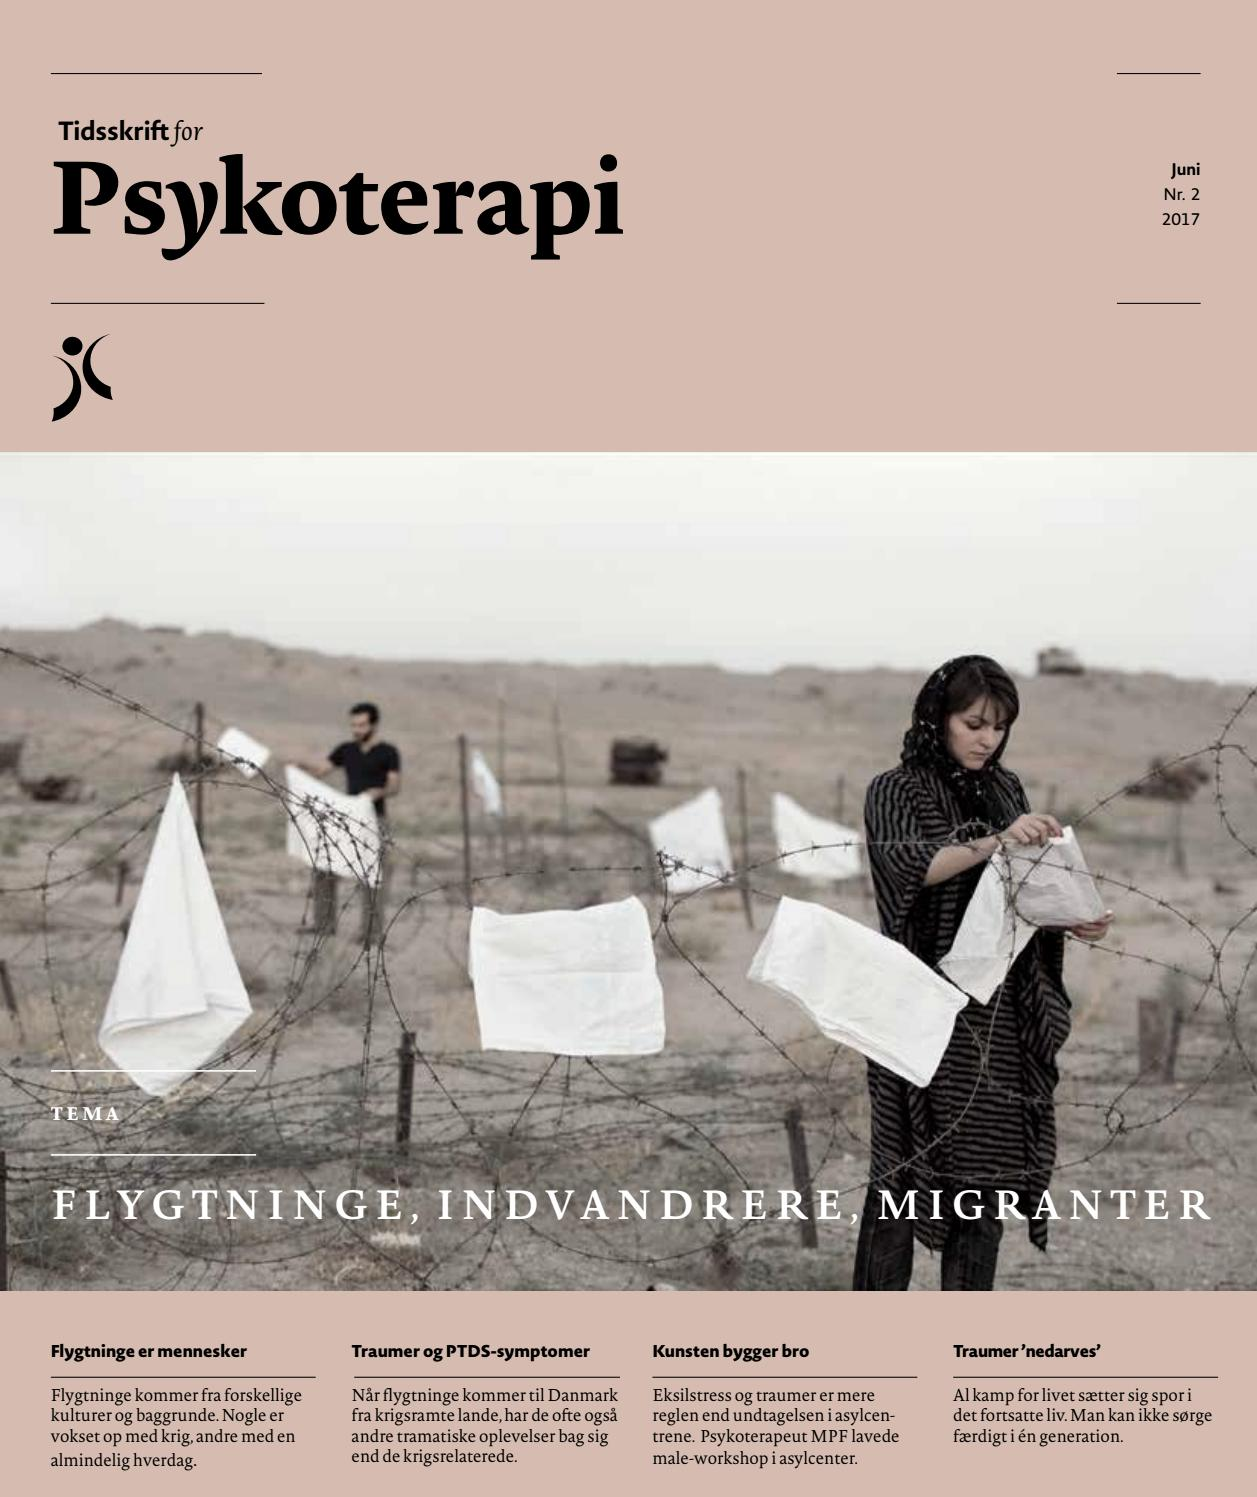 65418060 Tidsskrift for Psykoterapi 2017 2 by Susanne van Deurs - issuu